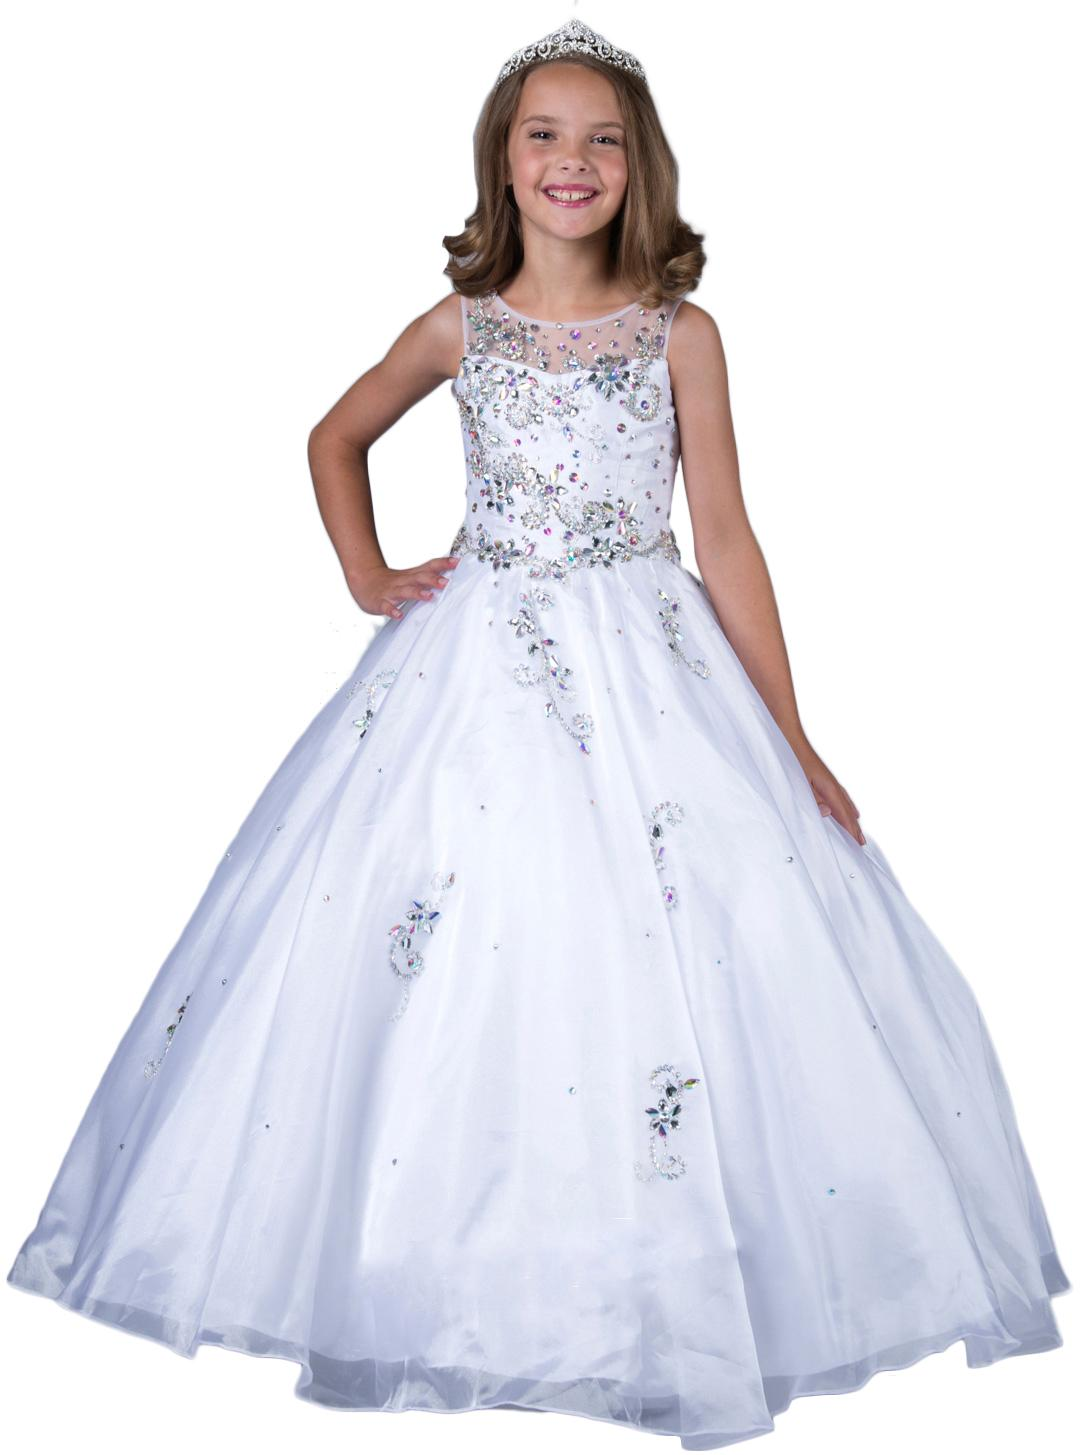 2016 new little girls pageant dresses custom made beads white holy 2016 new little girls pageant dresses custom made beads white holy communion ball gowns kids party princess dress first communion dresses junior wedding ombrellifo Image collections